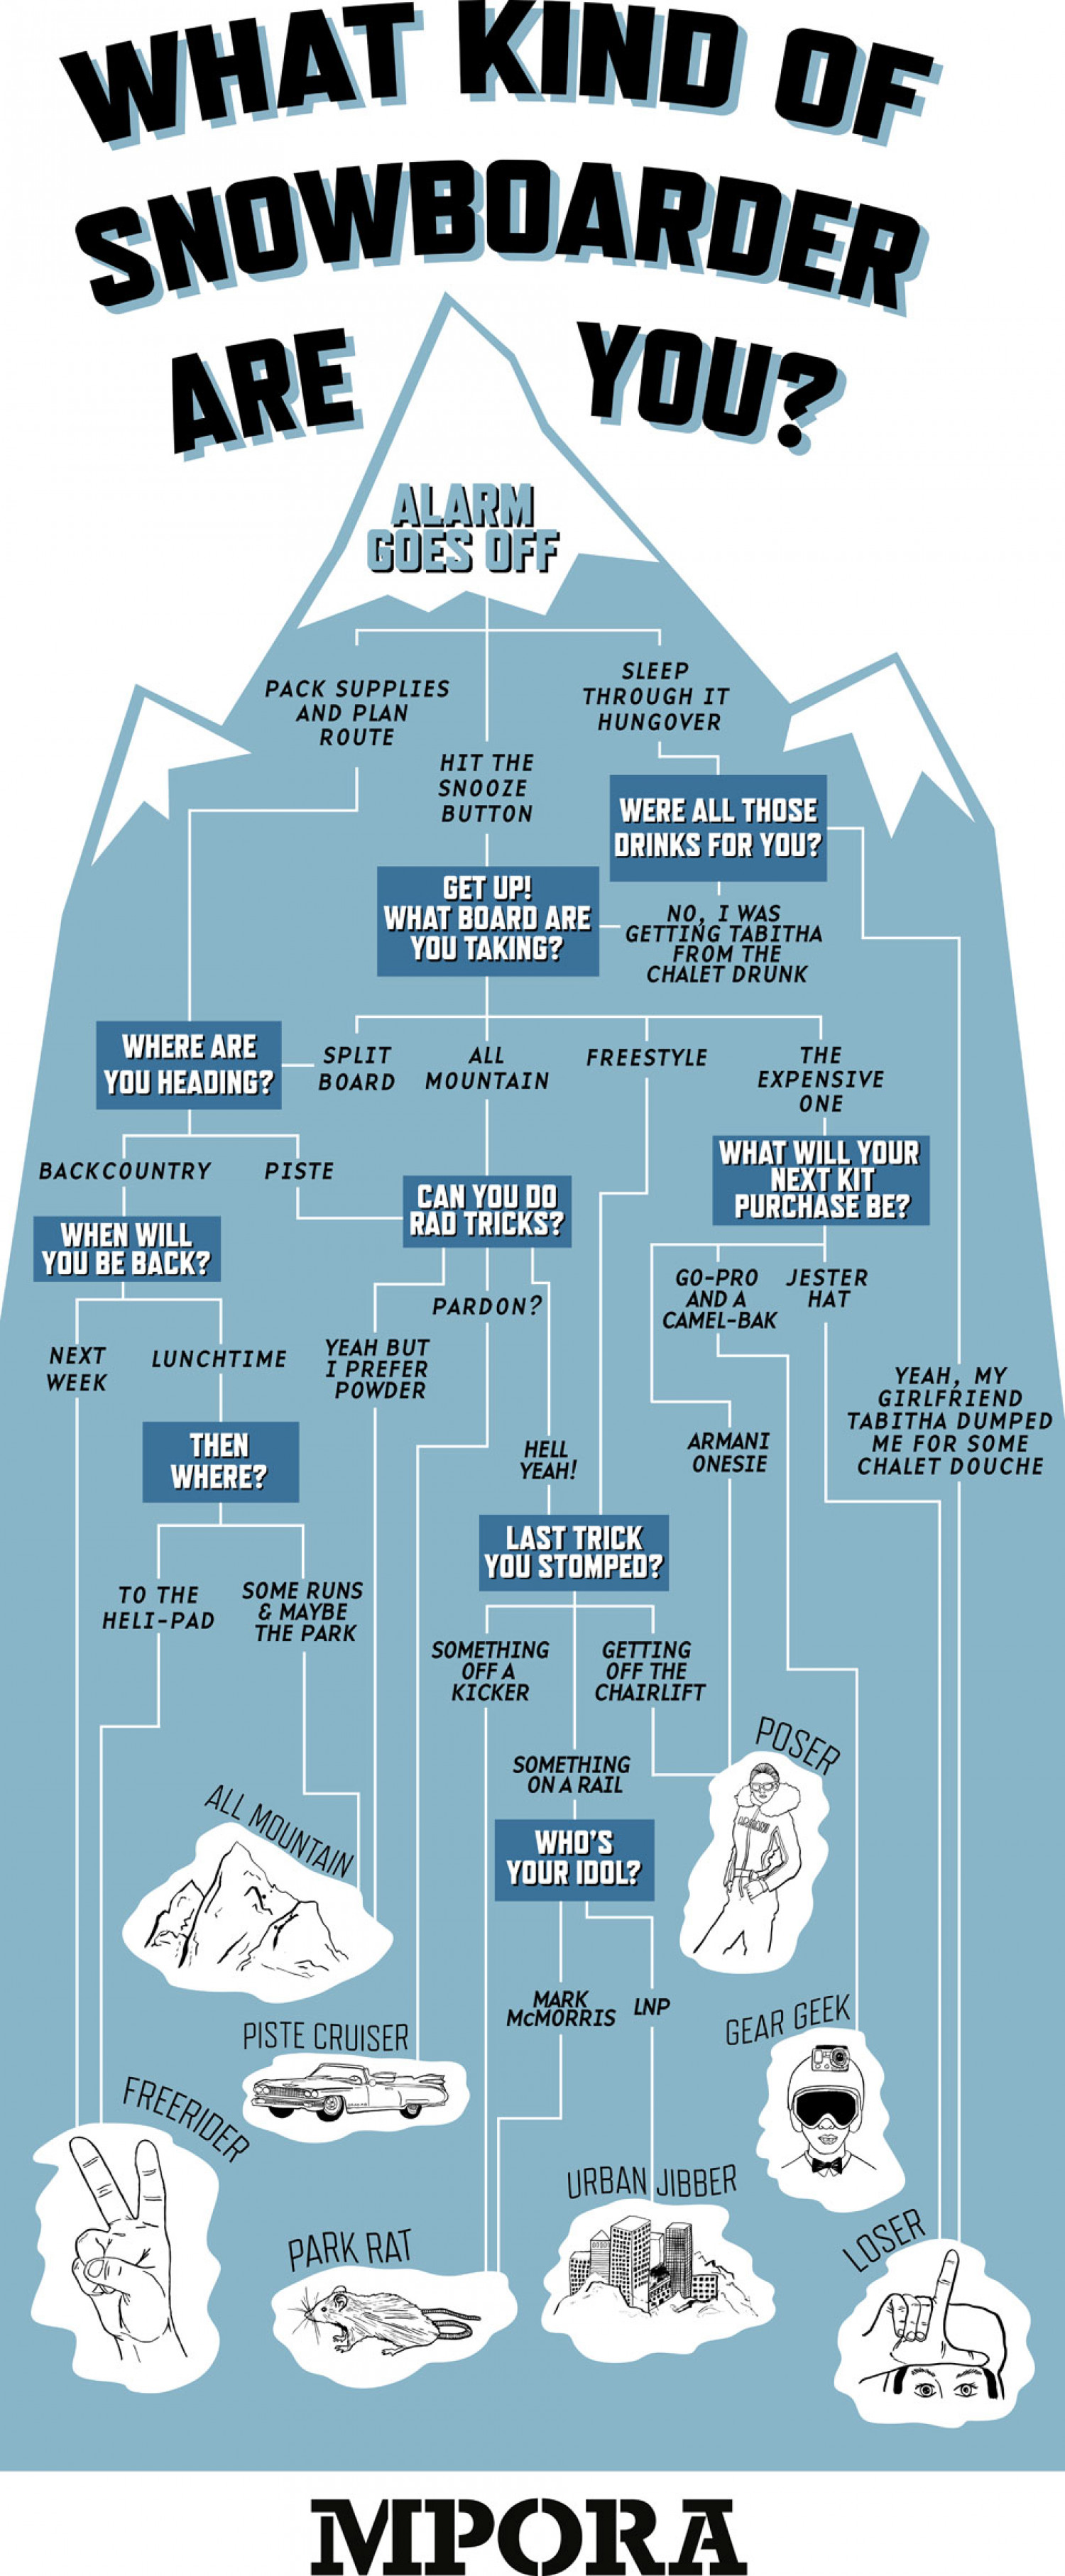 What kind of snowboarder are you? Infographic